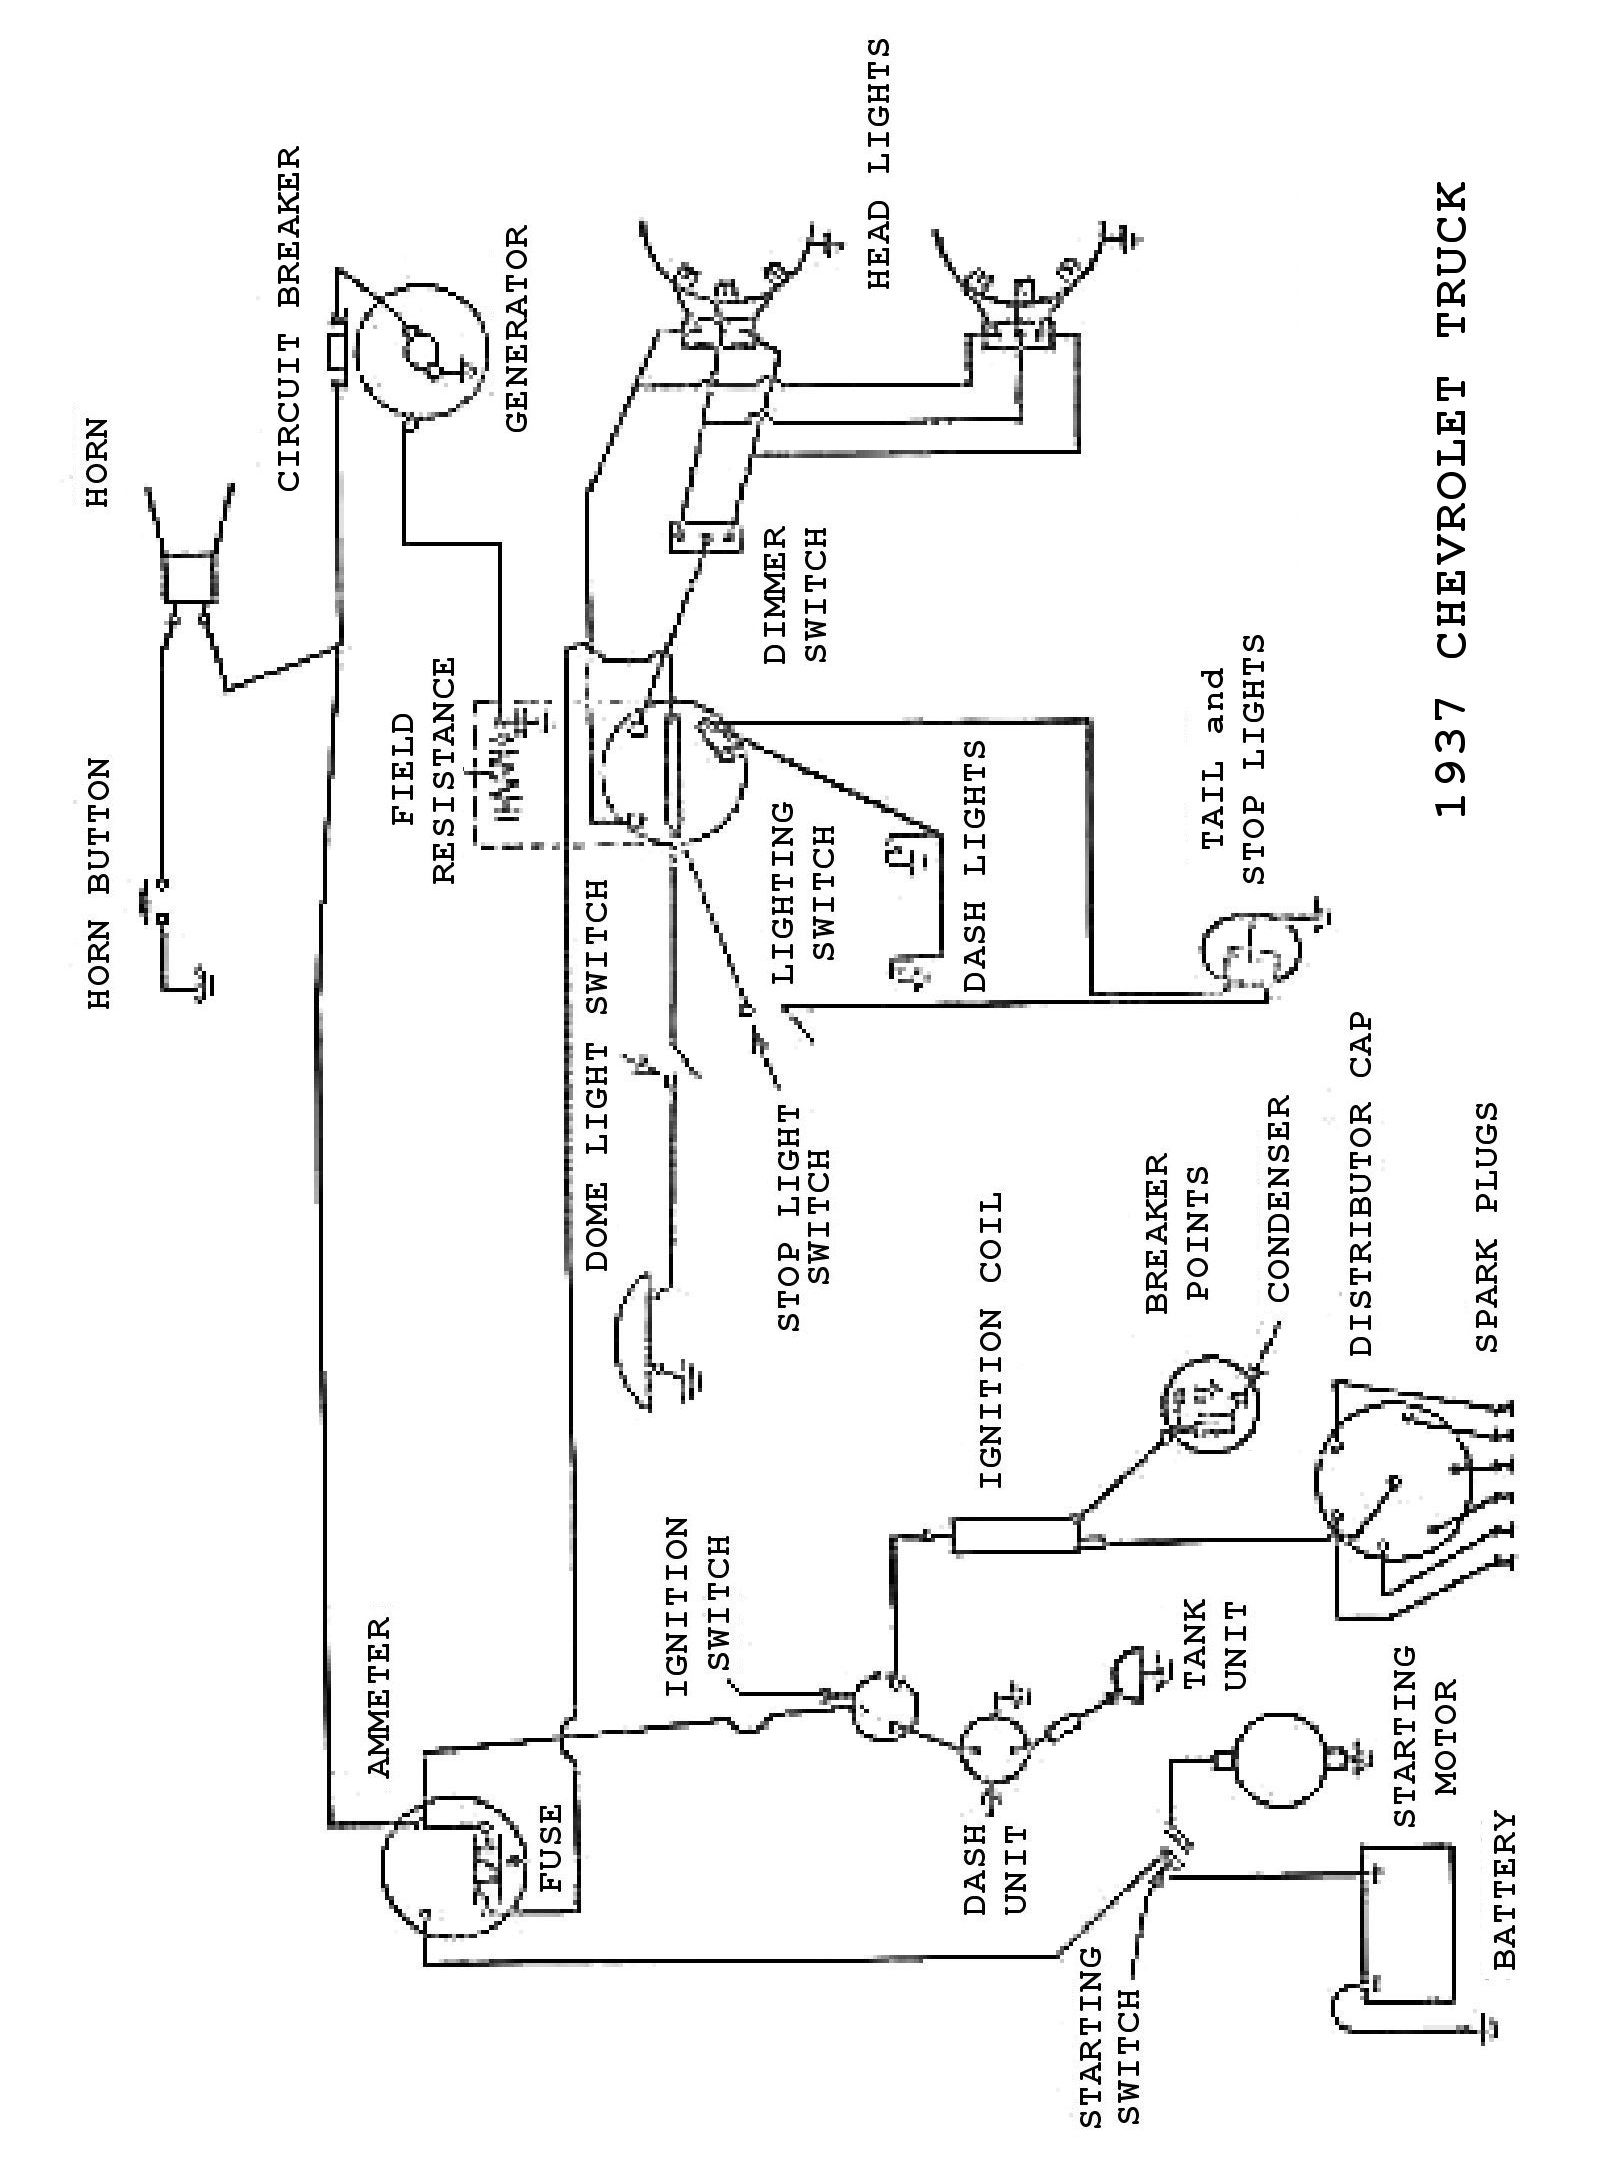 1939 Chevy Wire Diagram | Wiring Diagram on 1985 chevy truck wiring diagram, chevy truck ignition diagram, chevy turbo 400 transmission wiring diagram, chevy truck motor diagram, gm ignition switch wiring diagram, 2004 chevy malibu headlight wiring diagram, chevy truck spark plug wires diagram, 74 chevy truck wiring diagram, chevy silverado trailer wiring harness, 96 chevy truck wiring diagram, chevy truck headlight assembly diagram, chevy wiring schematics, speed sensor 1993 chevy wiring diagram, 1989 chevy truck wiring diagram, chevy truck radiator diagram, 1972 chevy truck wiring diagram, chevy truck fuse diagram, chevy truck transmission diagram, chevy truck master cylinder diagram, 63 chevy wiring diagram,